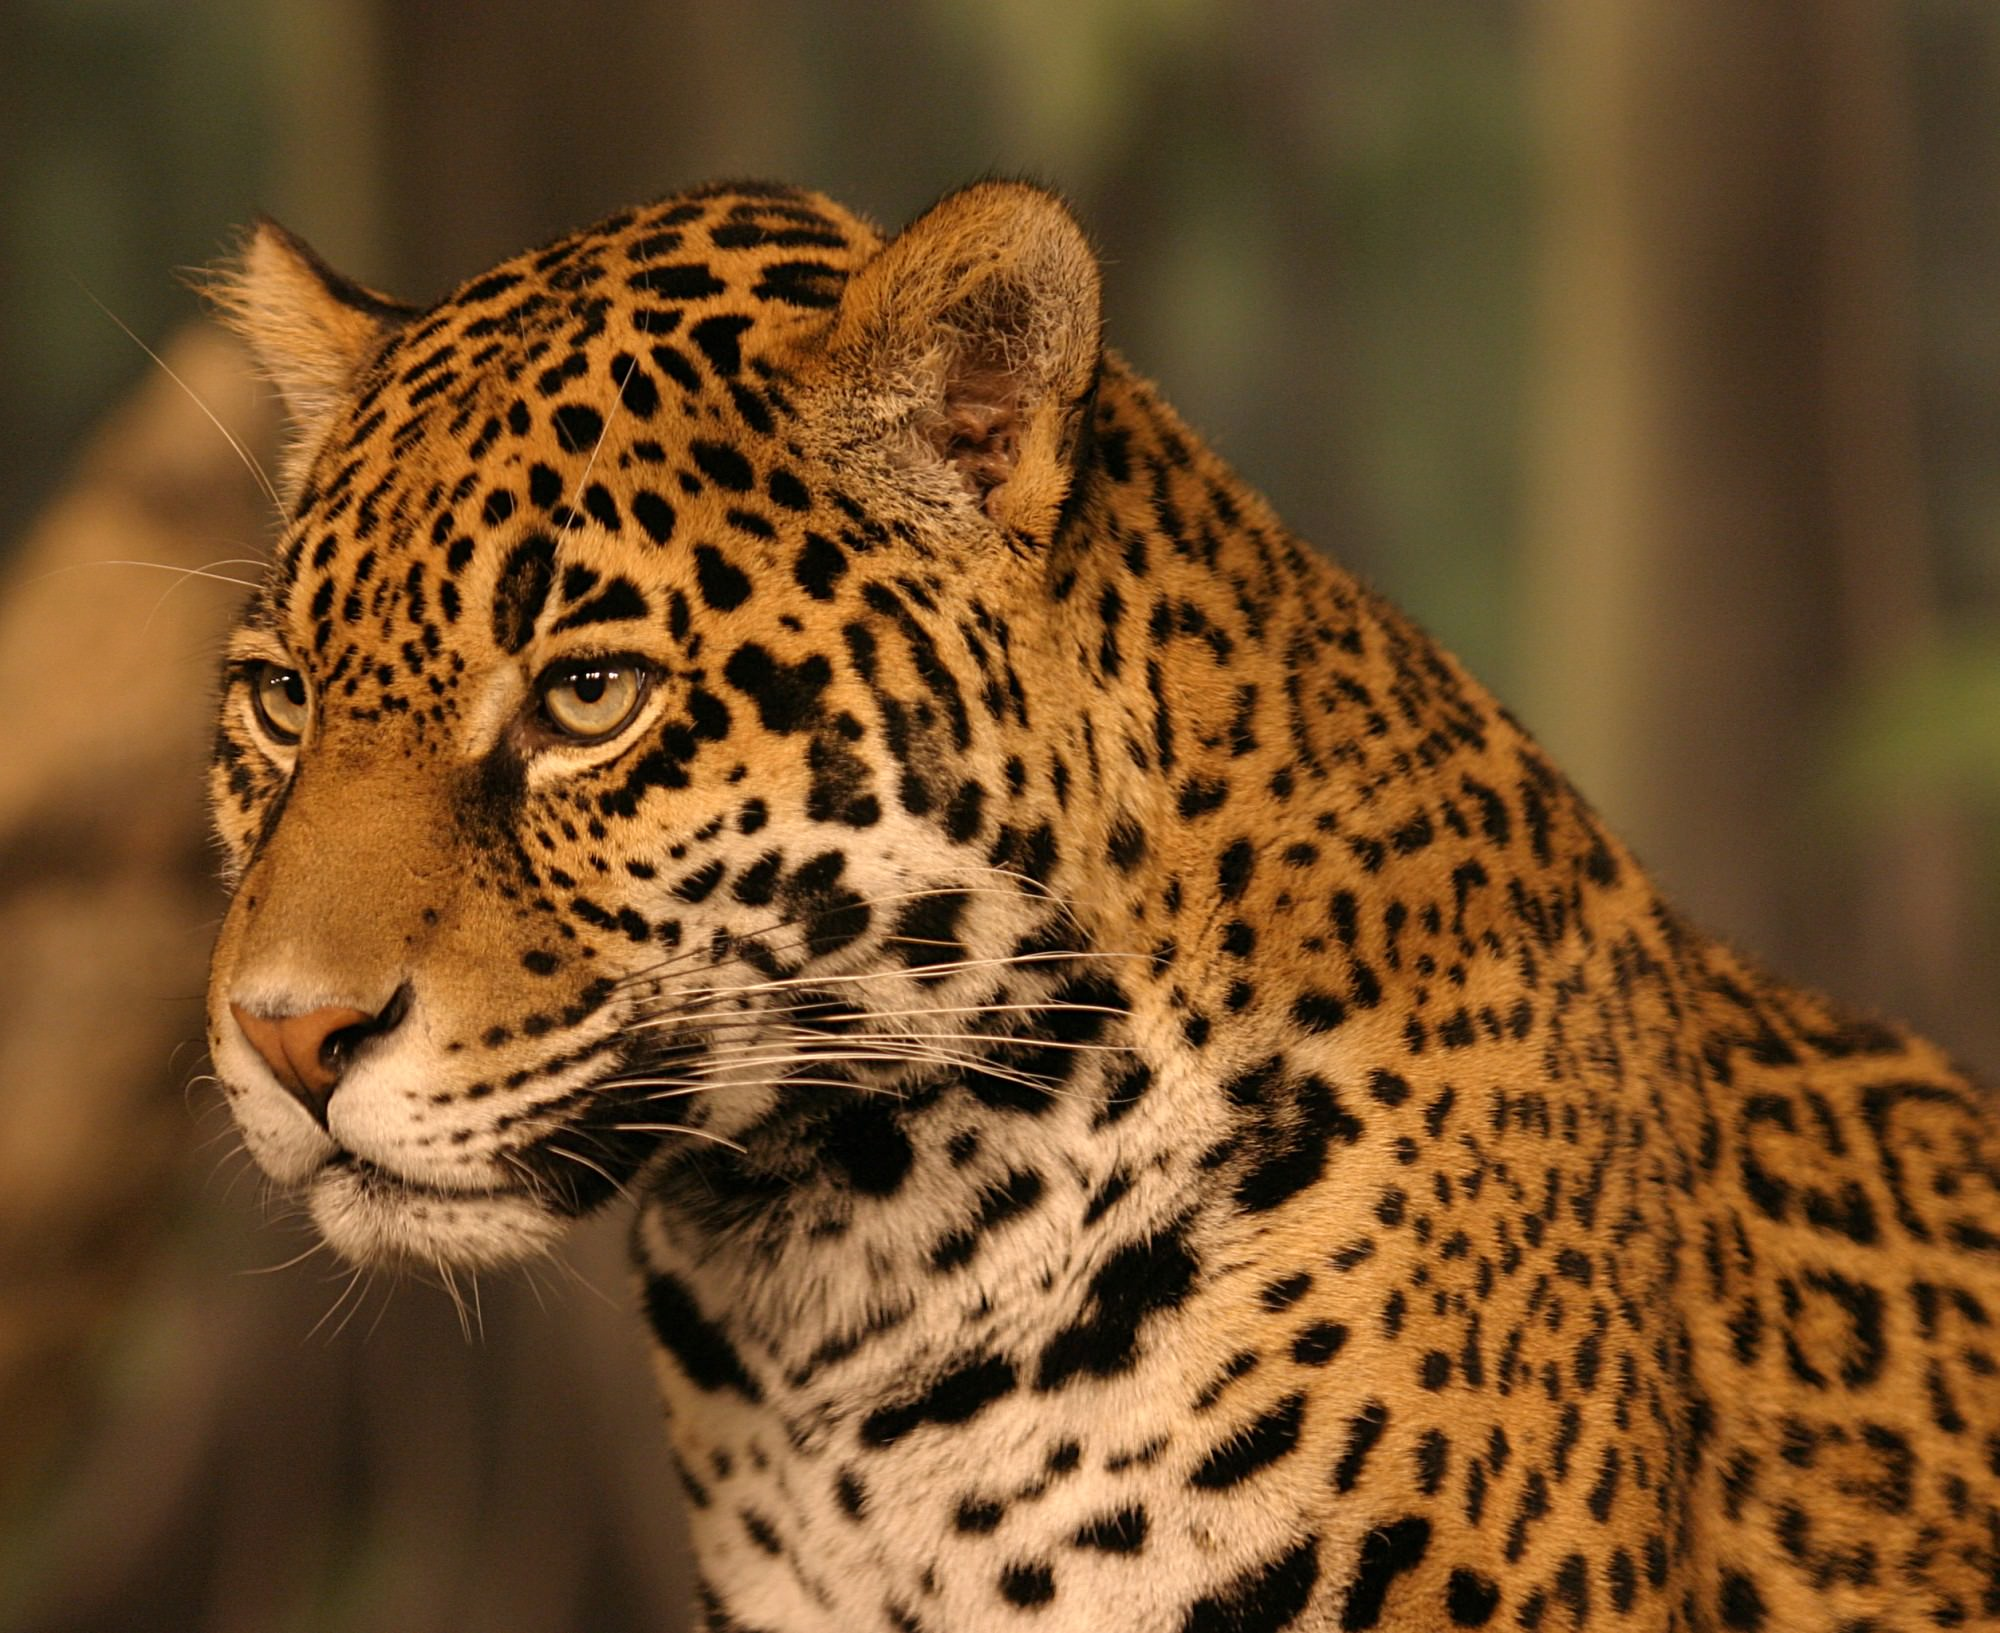 Wild cats of Costa Rica - Jaguar - Image sourced from Wikipedia